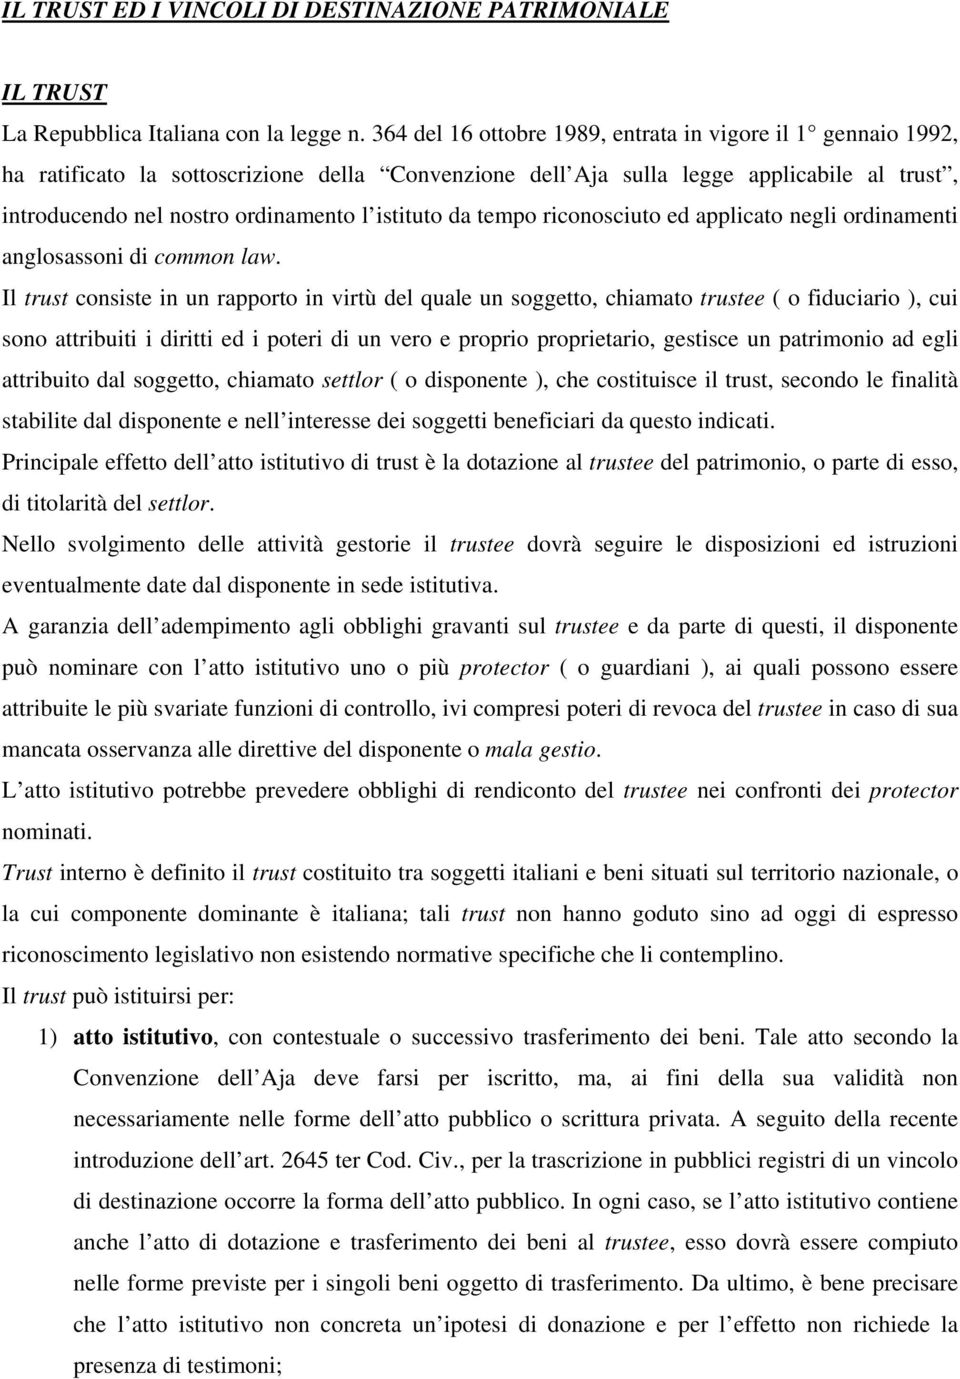 istituto da tempo riconosciuto ed applicato negli ordinamenti anglosassoni di common law.